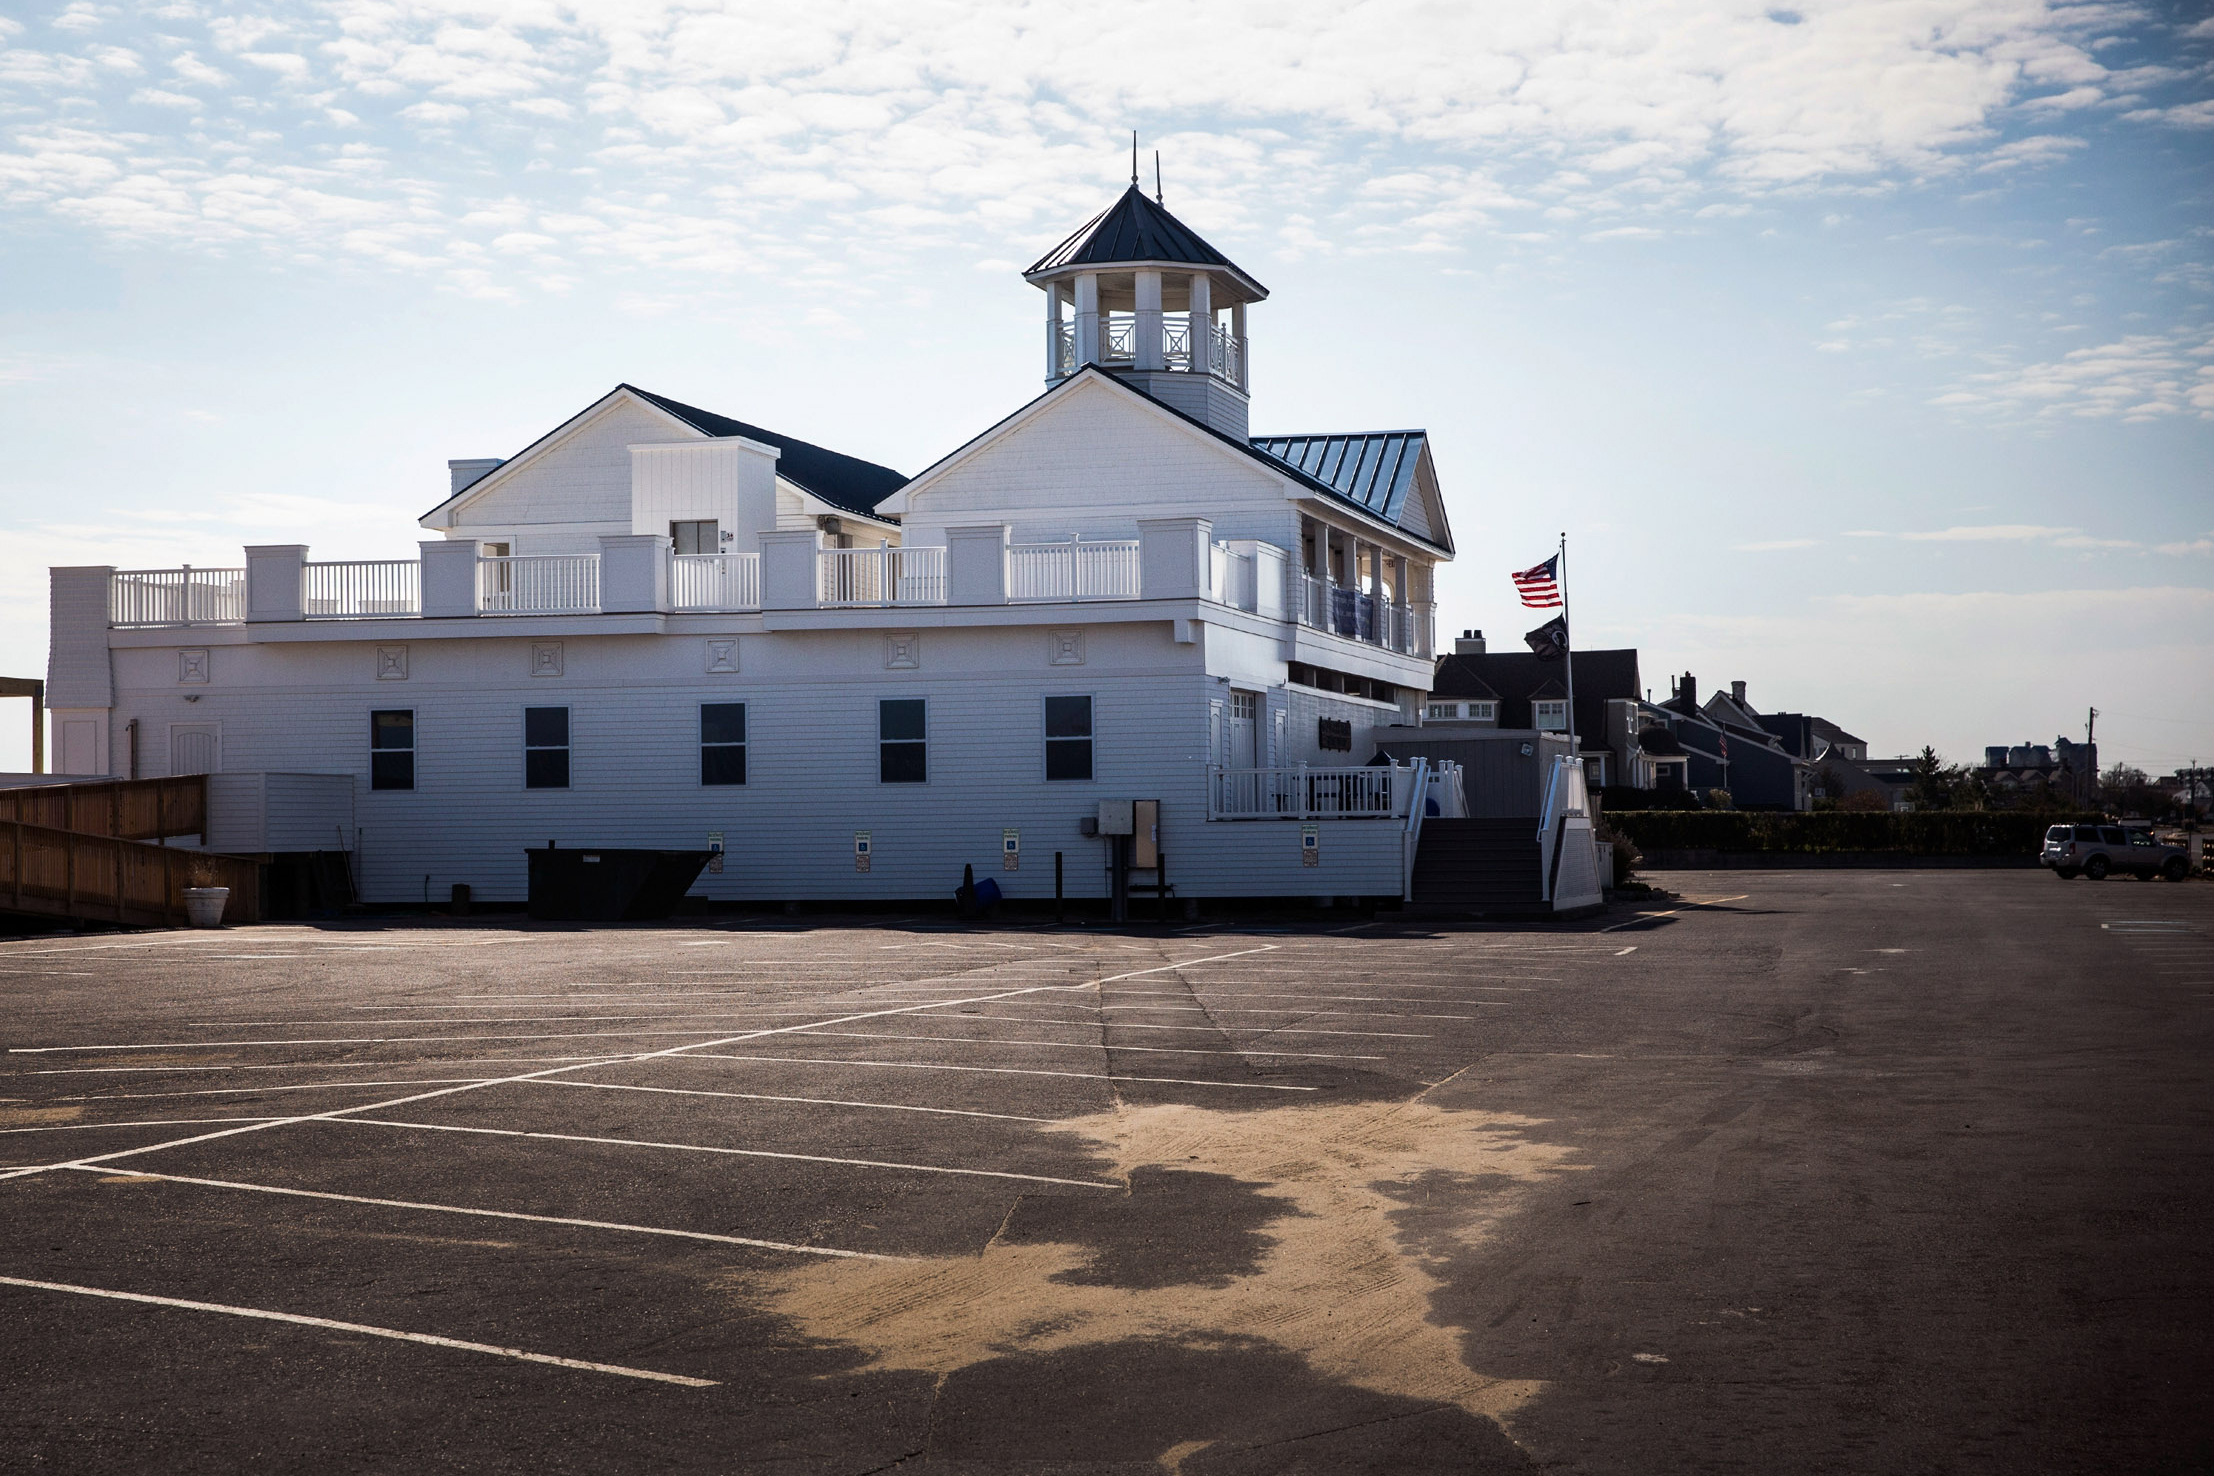 The Monmouth Beach pavilion on Oct. 22, 2013.